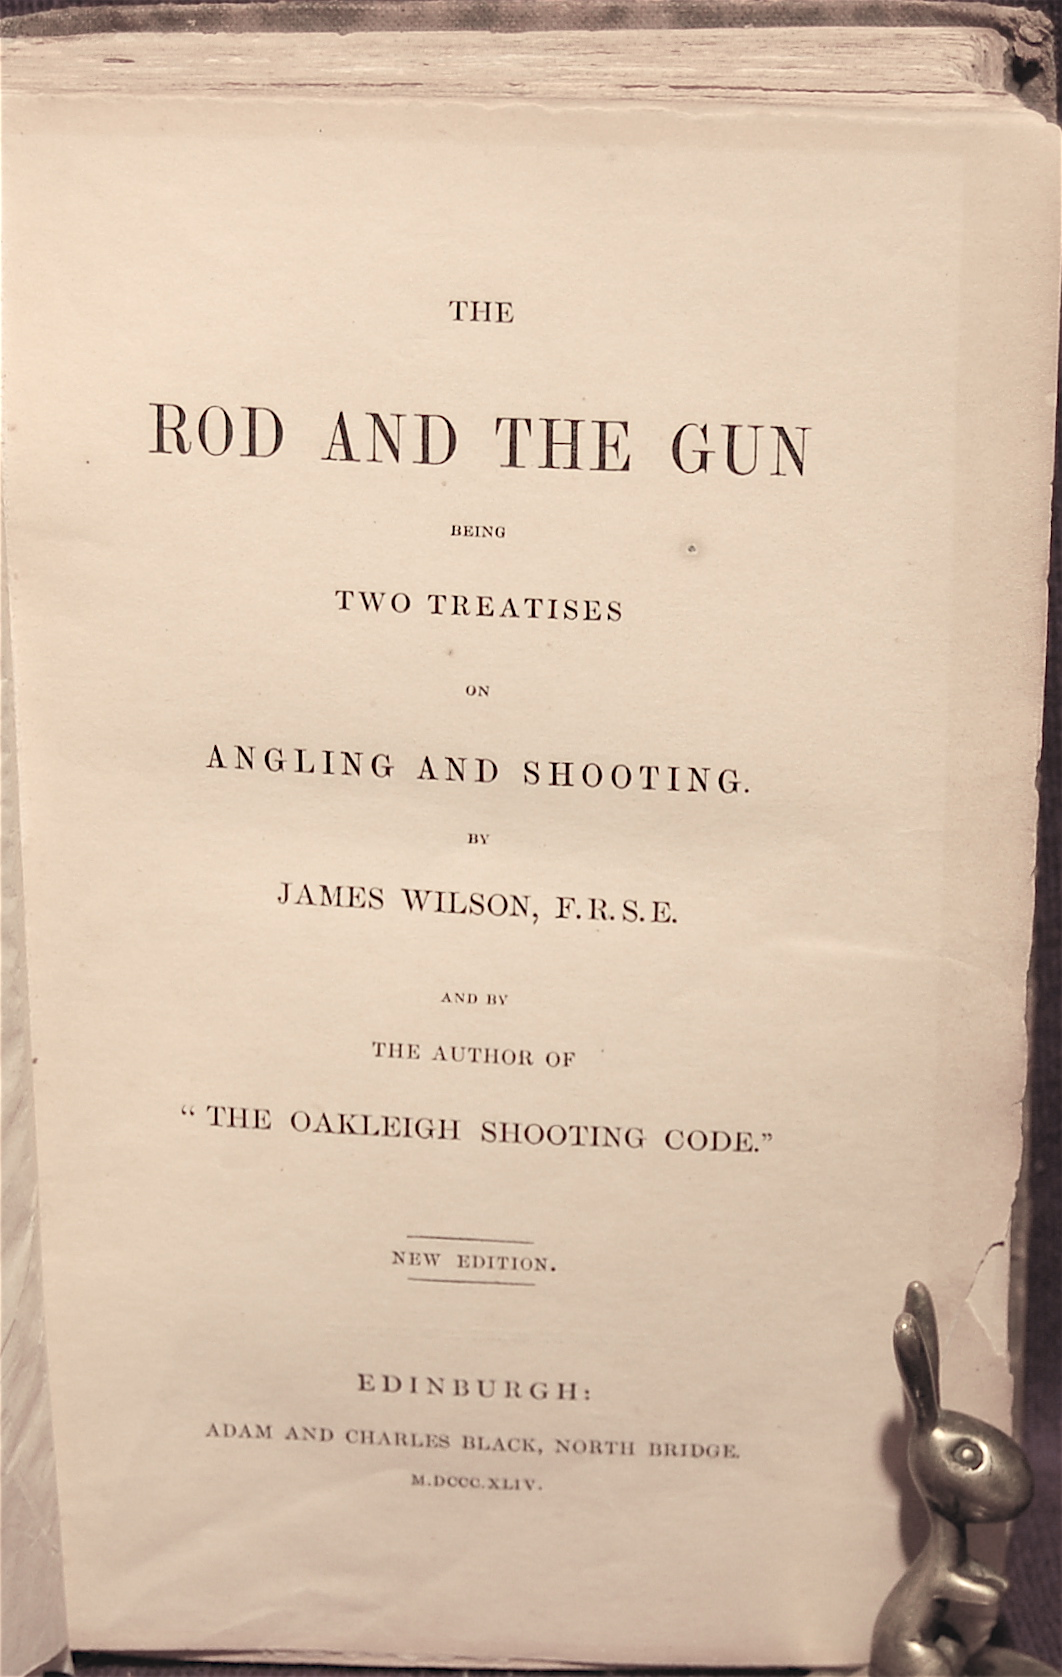 The Rod and the Gun, Being Two Treatises on Angling and Shooting